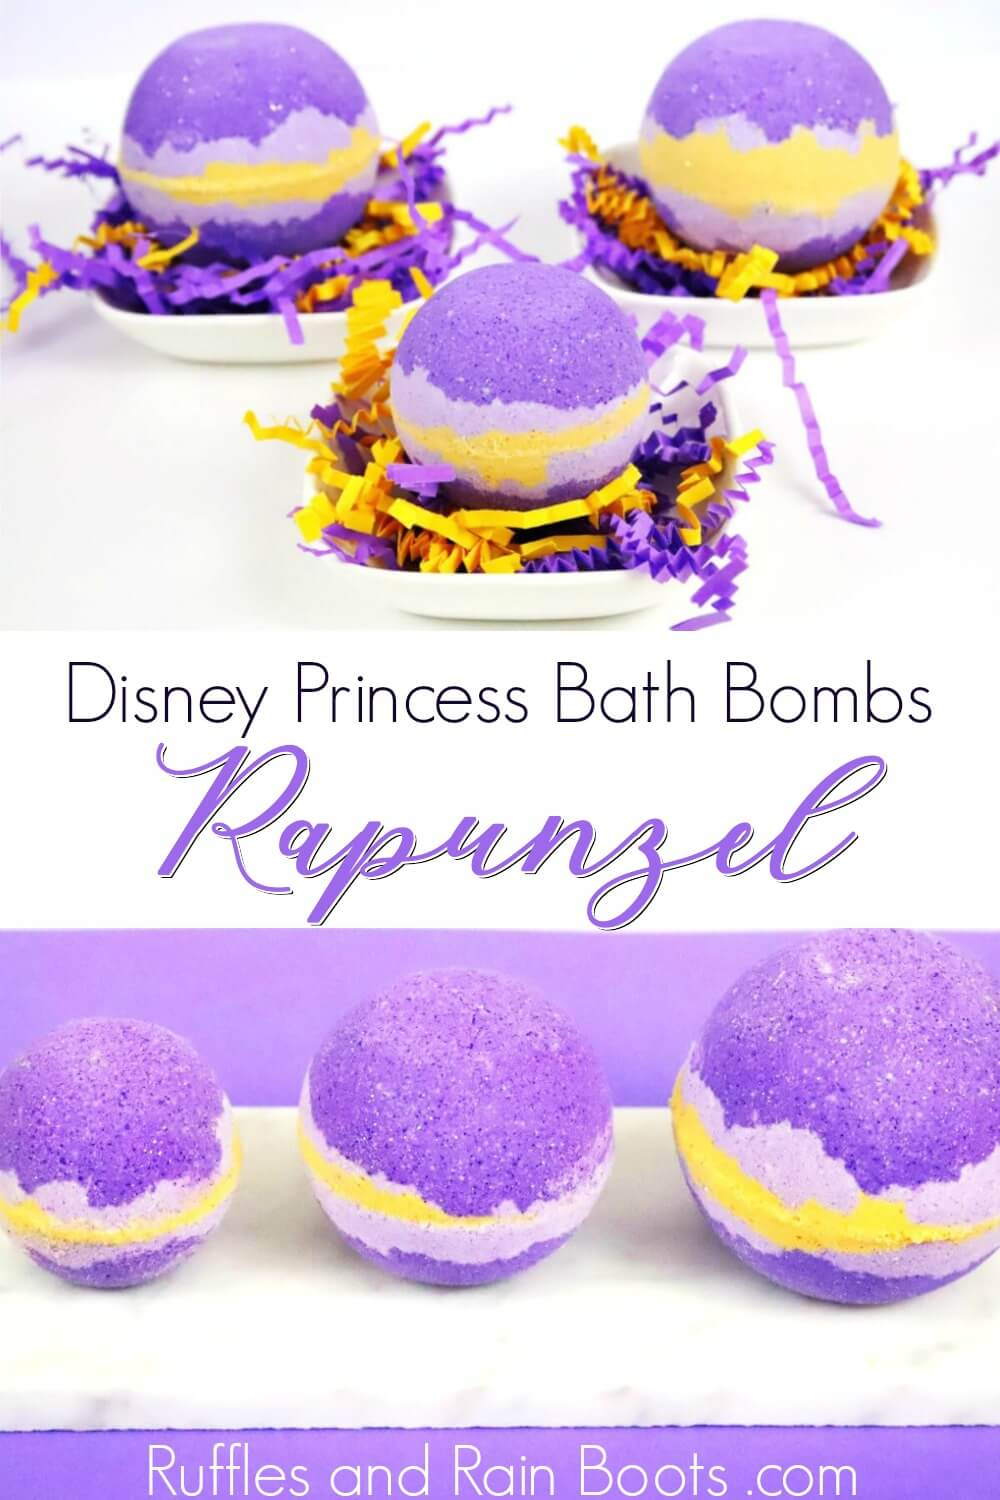 photo collage of purple bath bombs on white background with text which reads Disney princess bath bombs Rapunzel